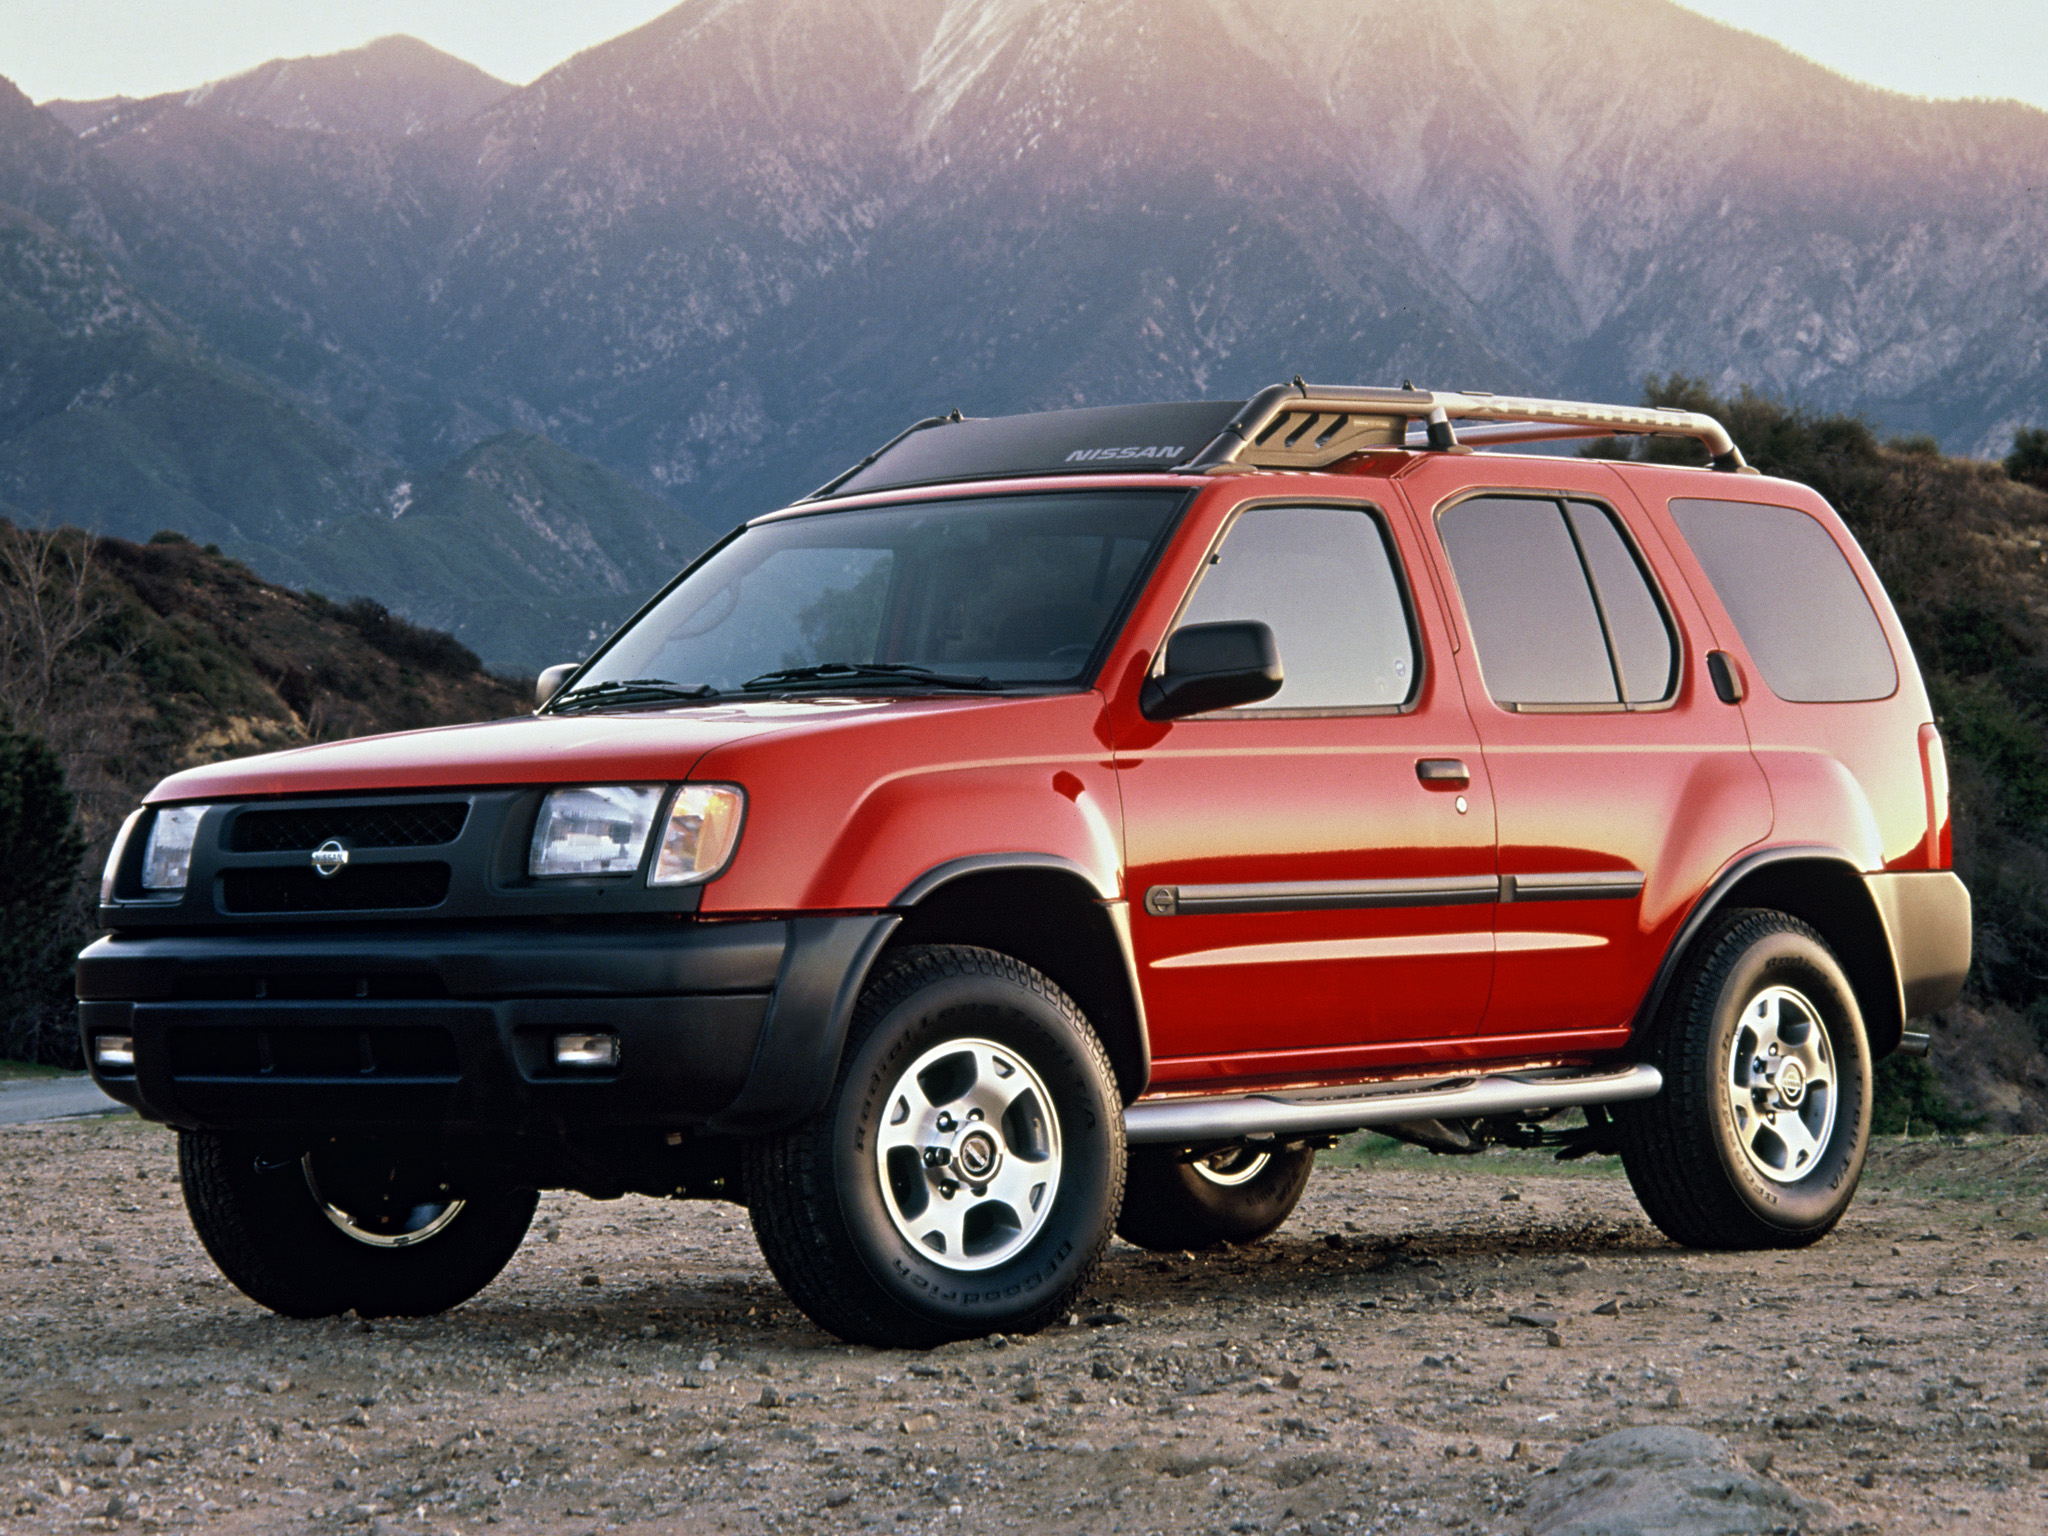 2001 nissan xterra wd22 pictures information and. Black Bedroom Furniture Sets. Home Design Ideas